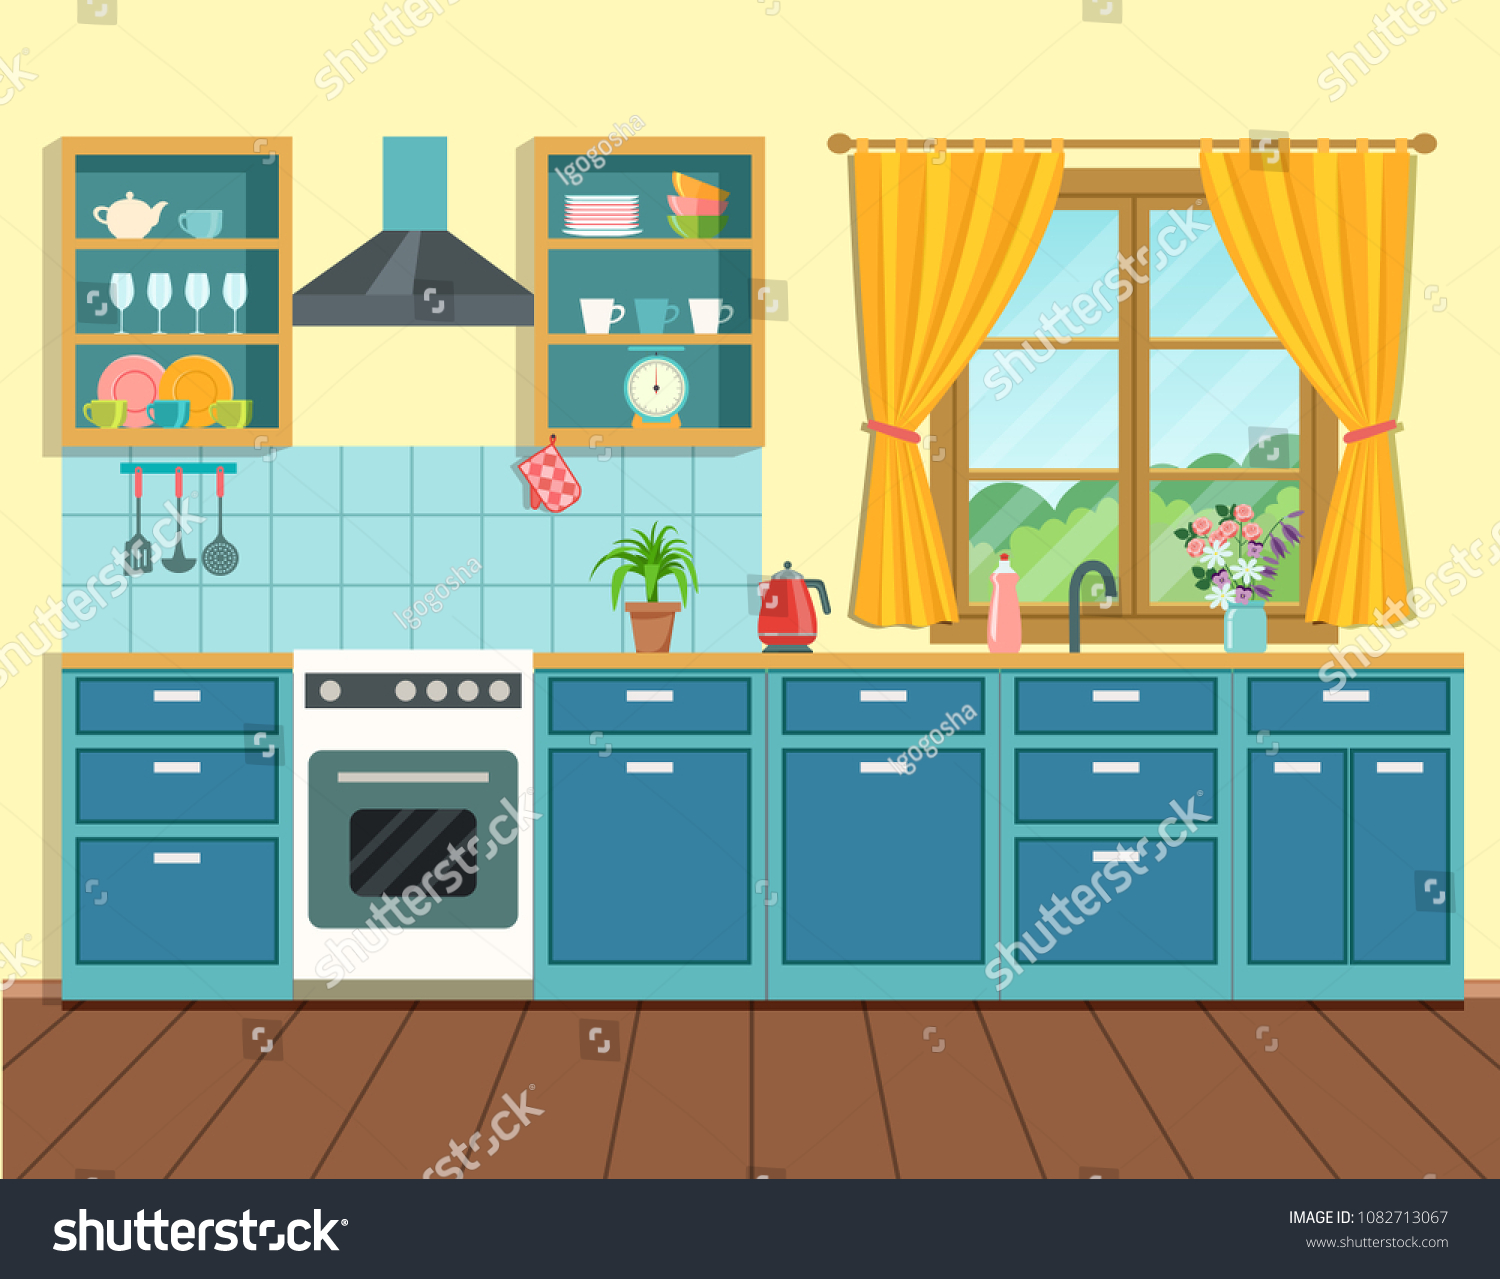 Cozy Interior Kitchen Rustic Style Window Stock Vector 1082713067 ...